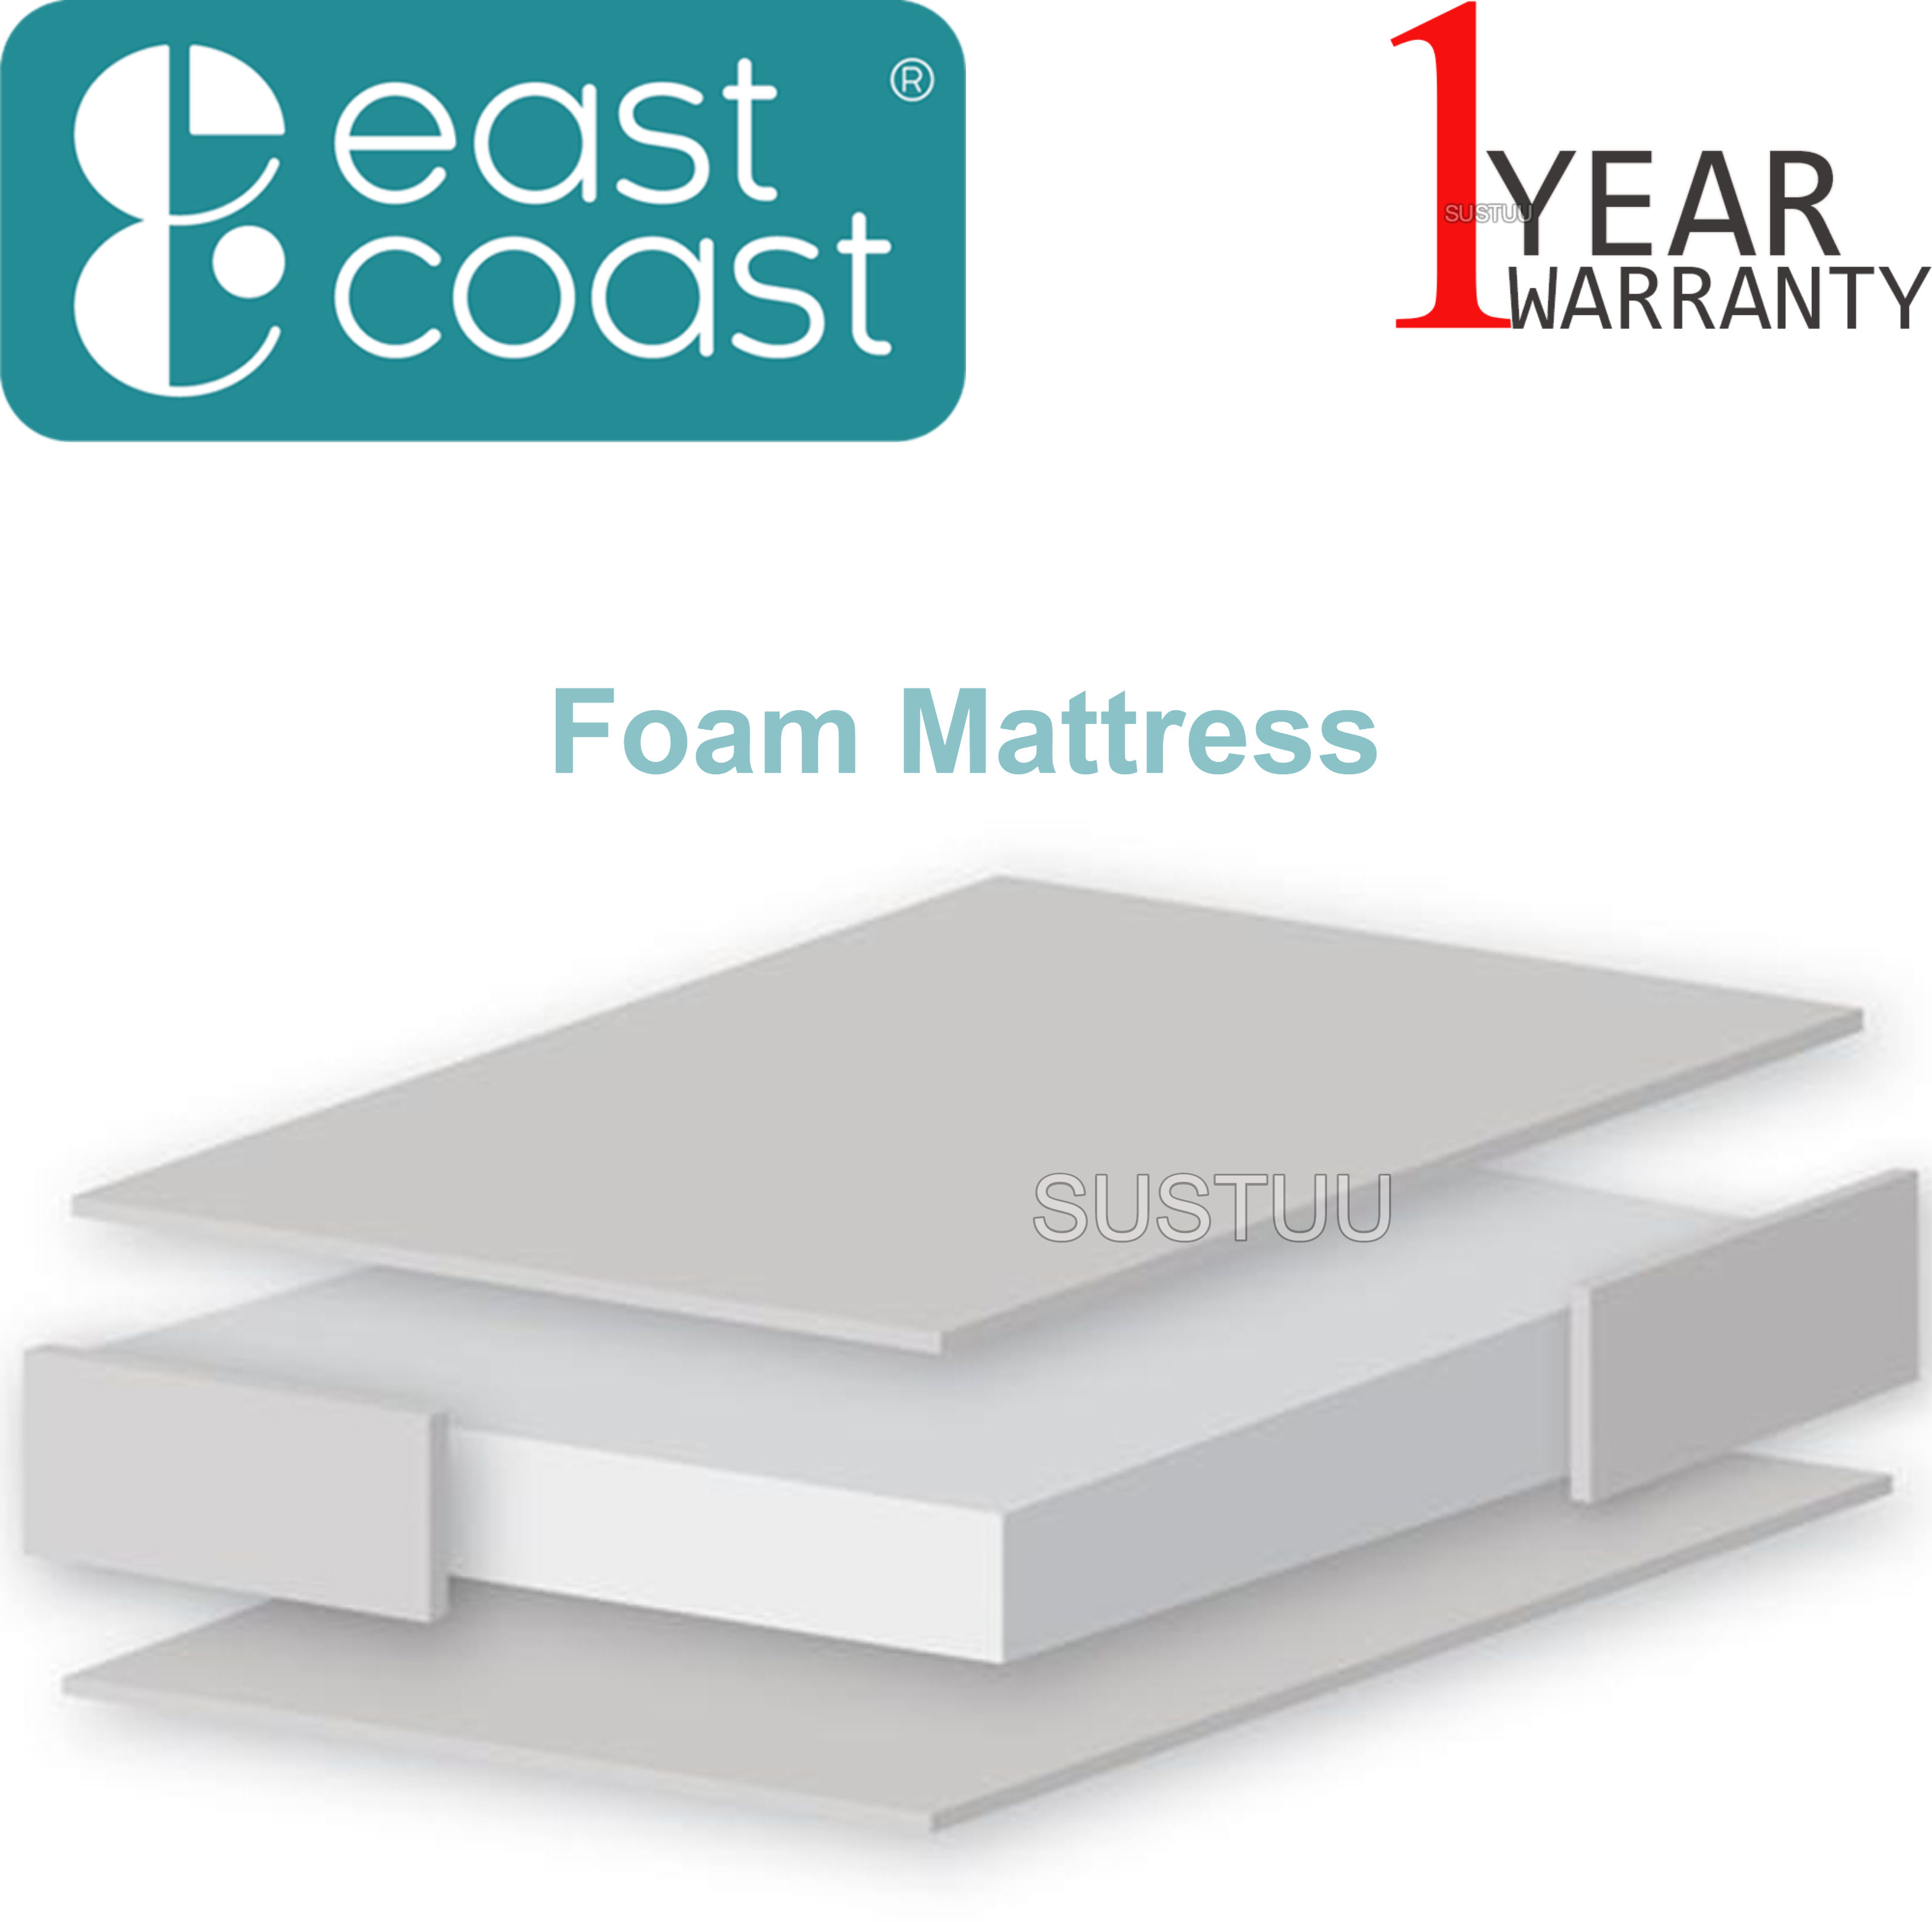 East Coast Swinging Crib Mattress (89 cm x 39.5 cm) | Soft, Comfortable & Safe | New